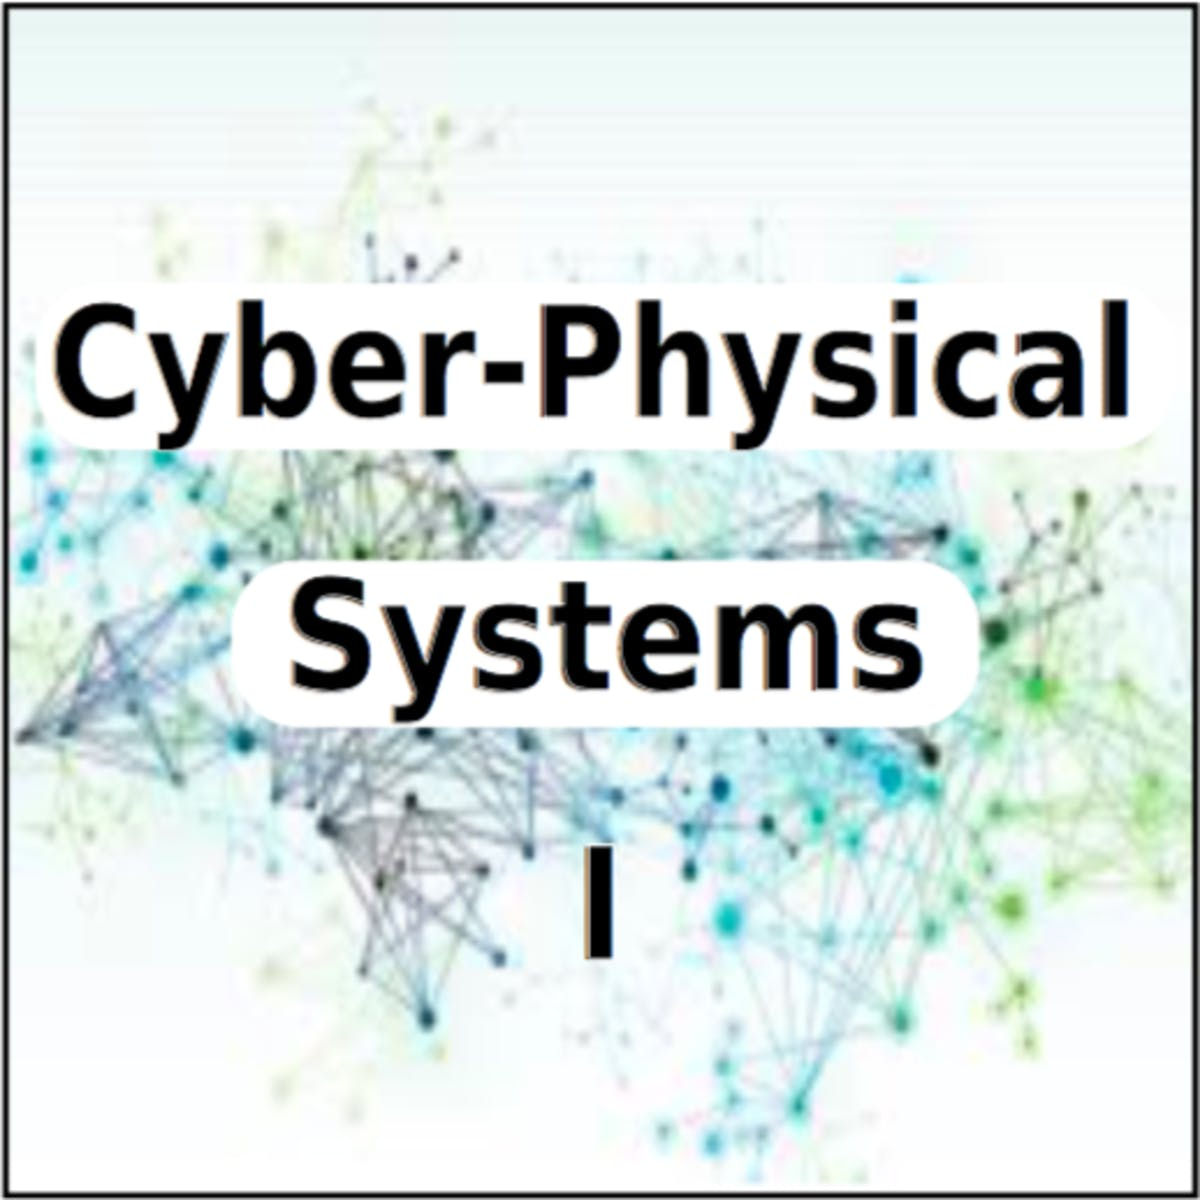 Cyber-Physical Systems 1